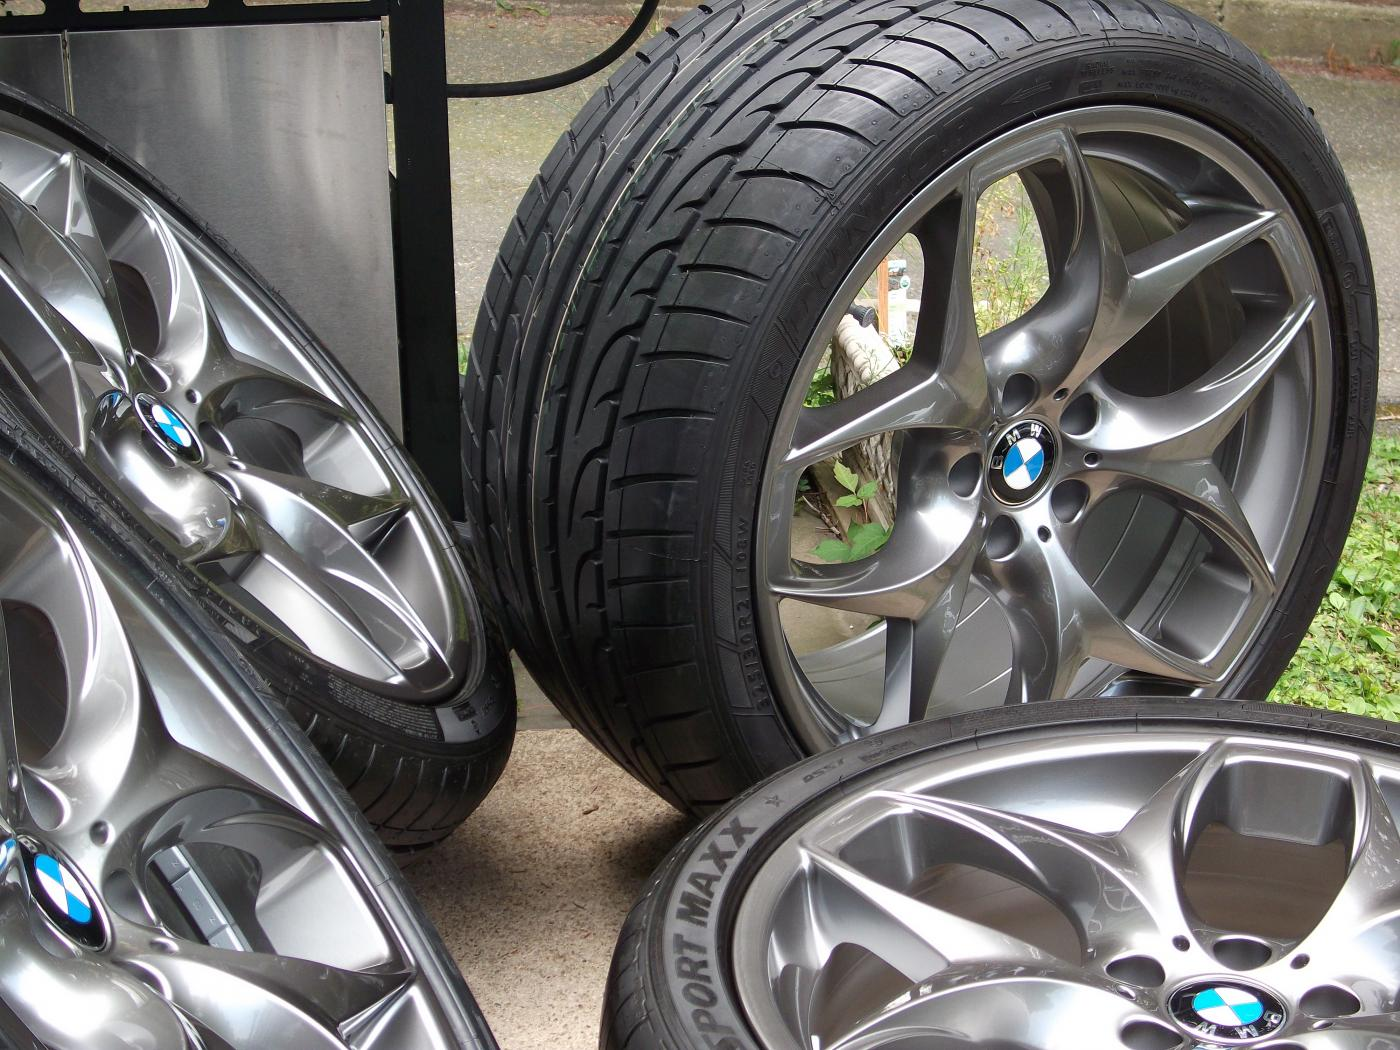 New Bmw X6 21 Quot Style 215 Complete Wheel Set Also Fits The X5m And X6m Xoutpost Com